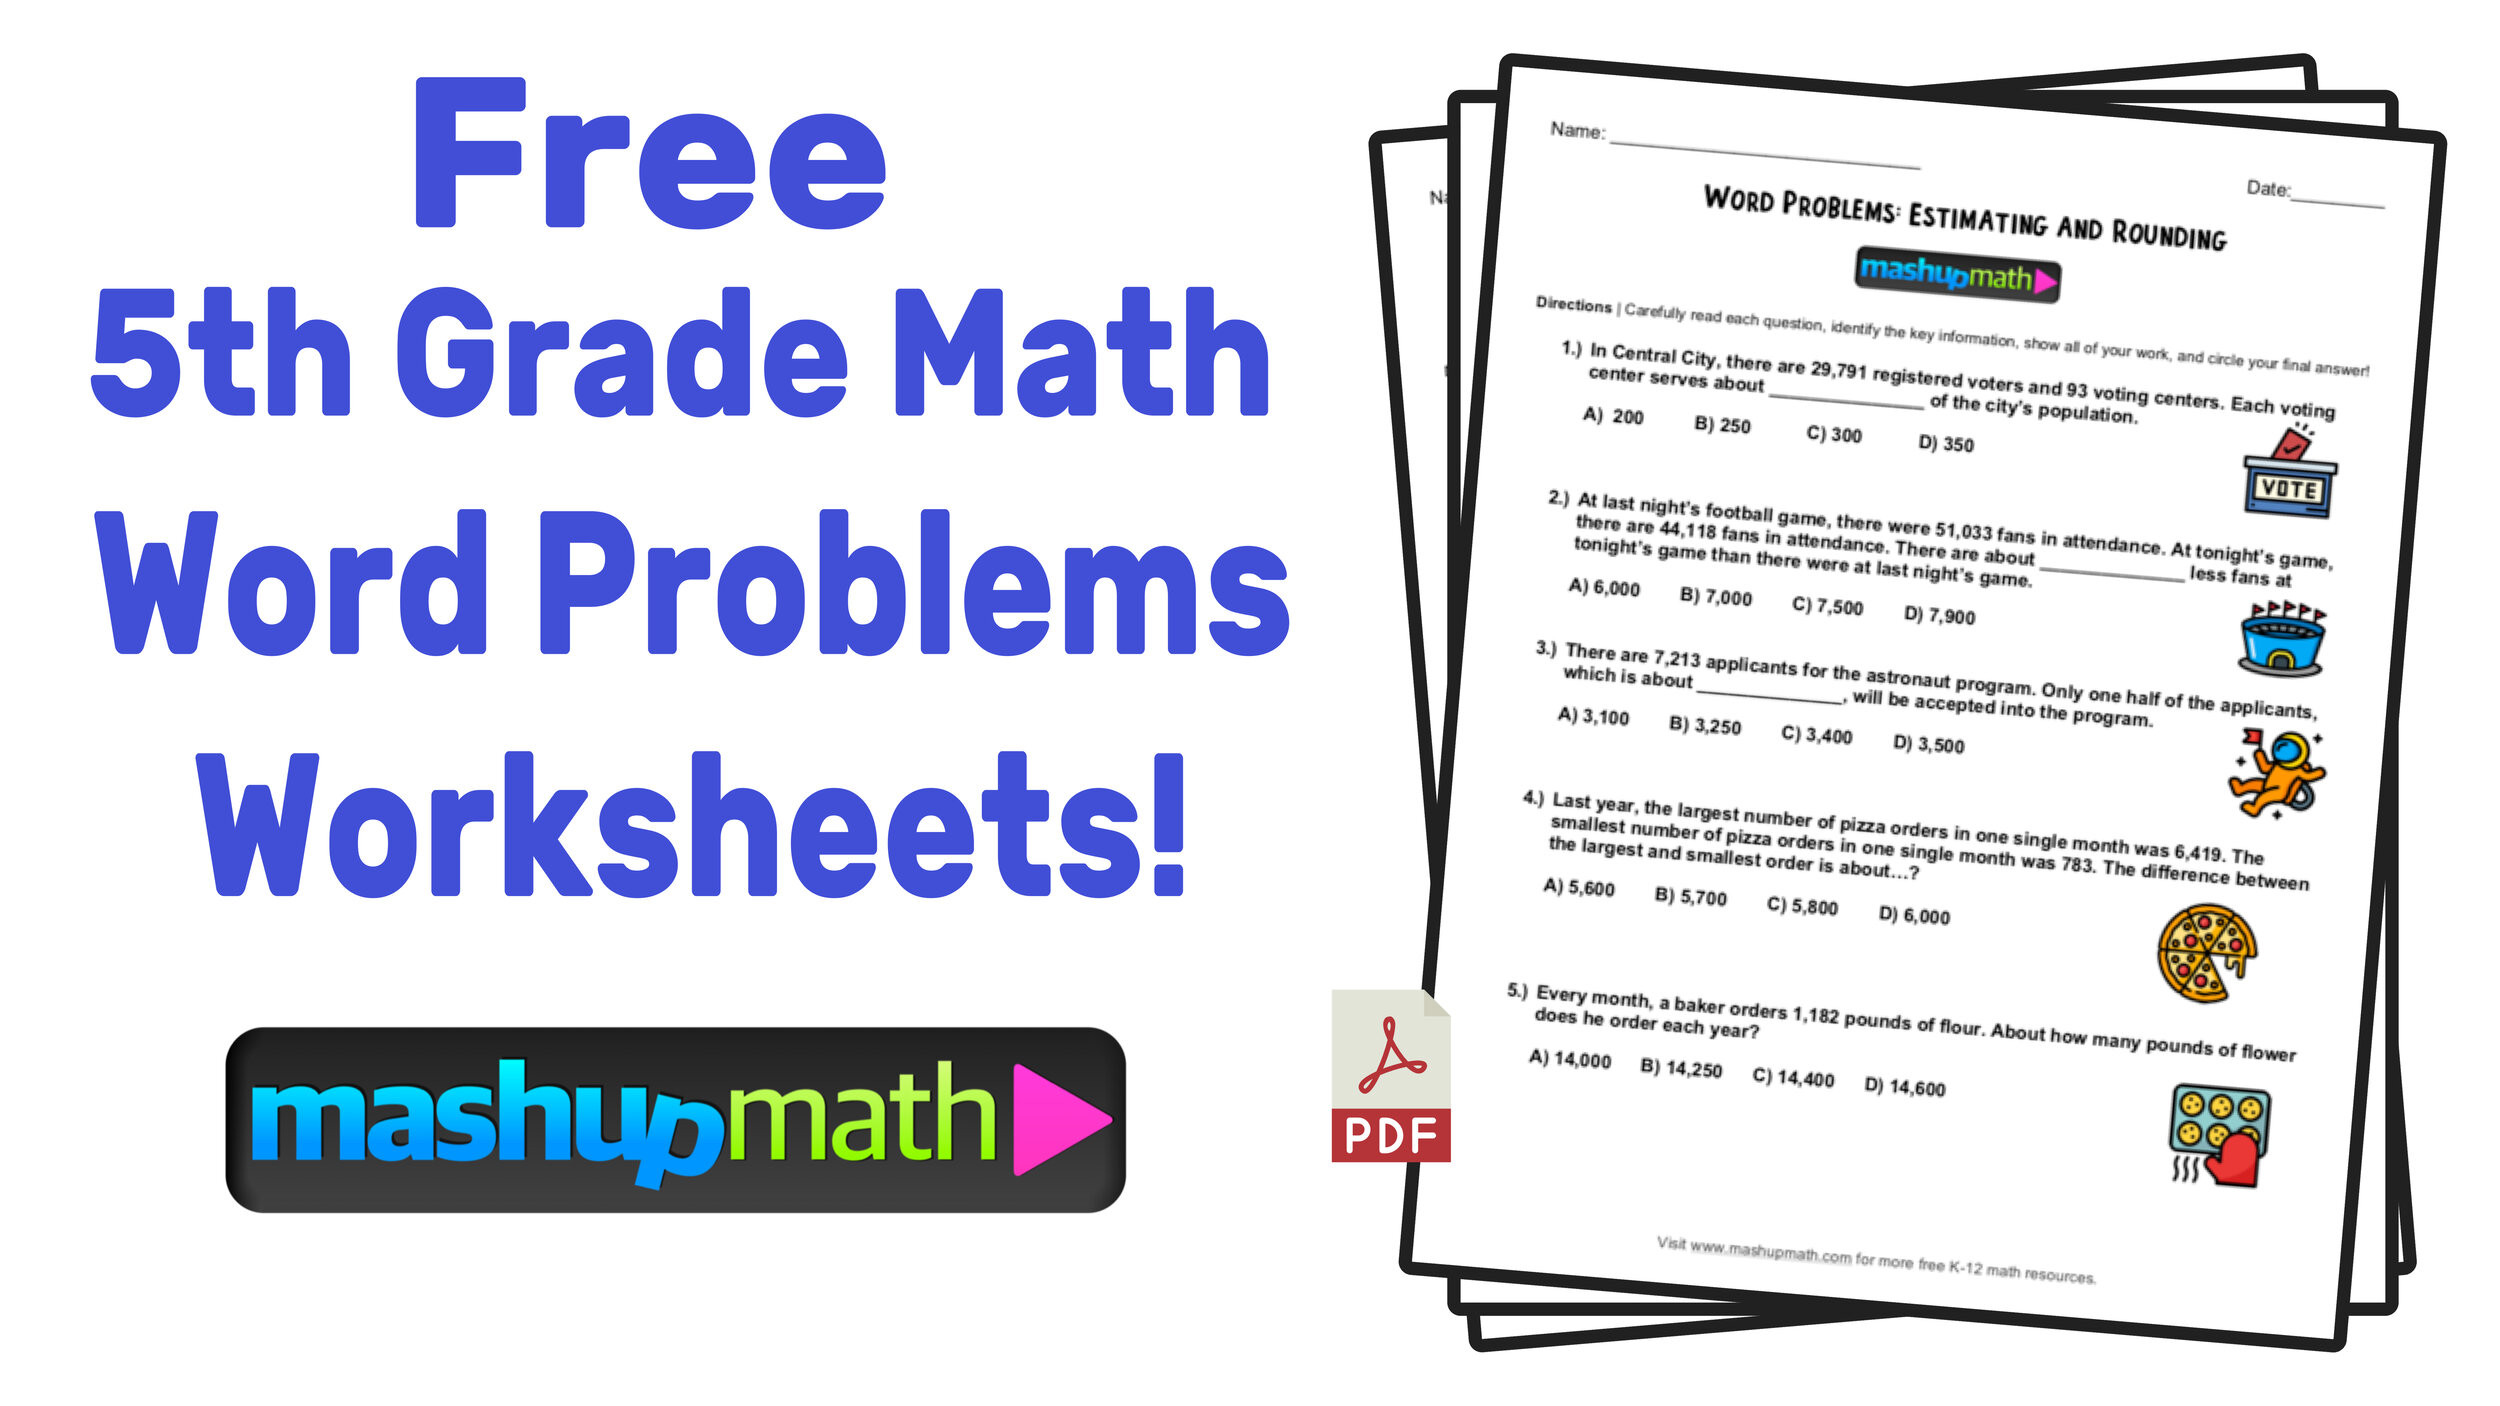 Math 5th Grade Worksheets 5th Grade Math Word Problems Free Worksheets with Answers